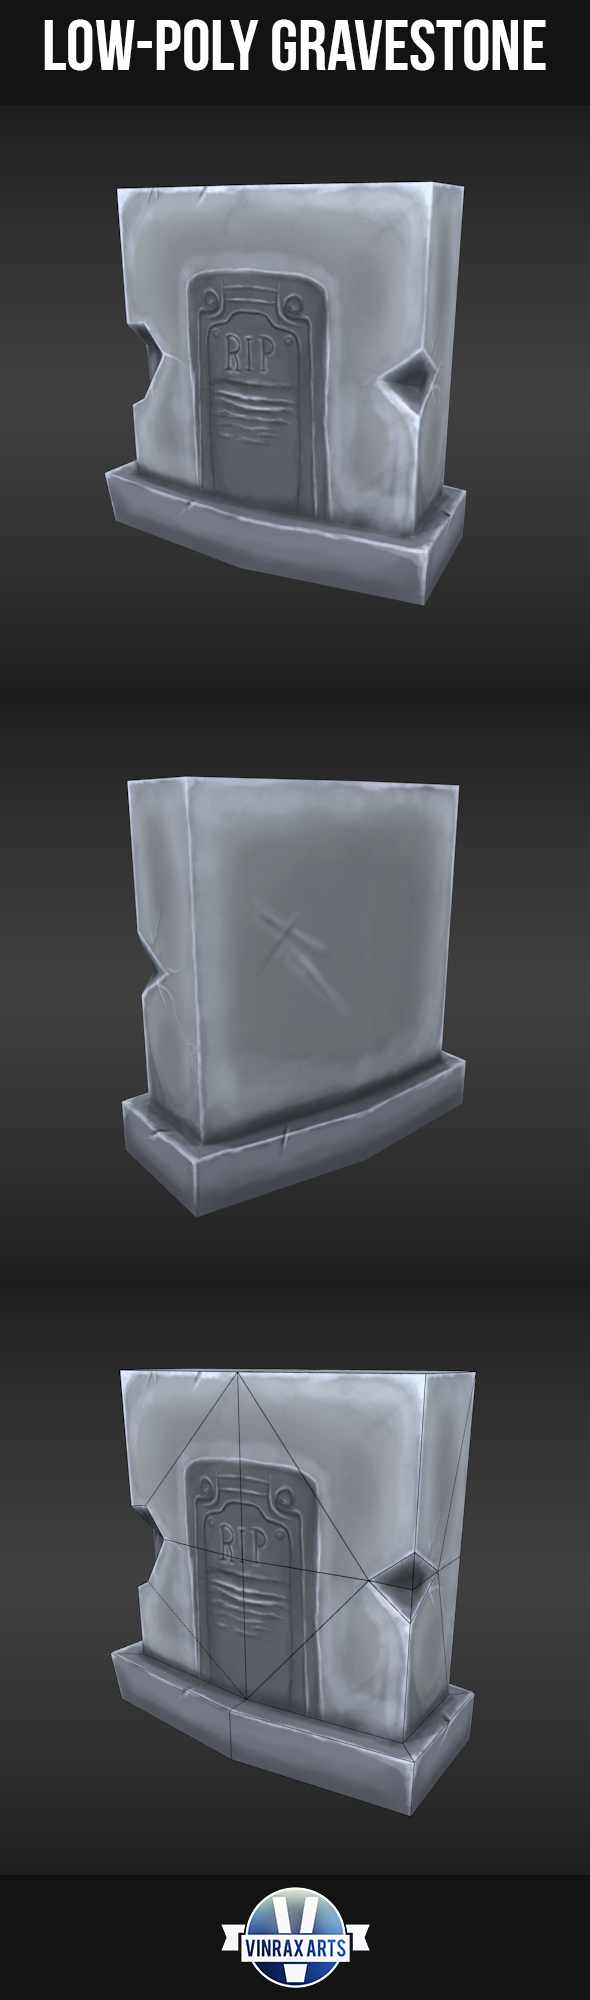 Low-Poly Grave Stone - 3DOcean Item for Sale